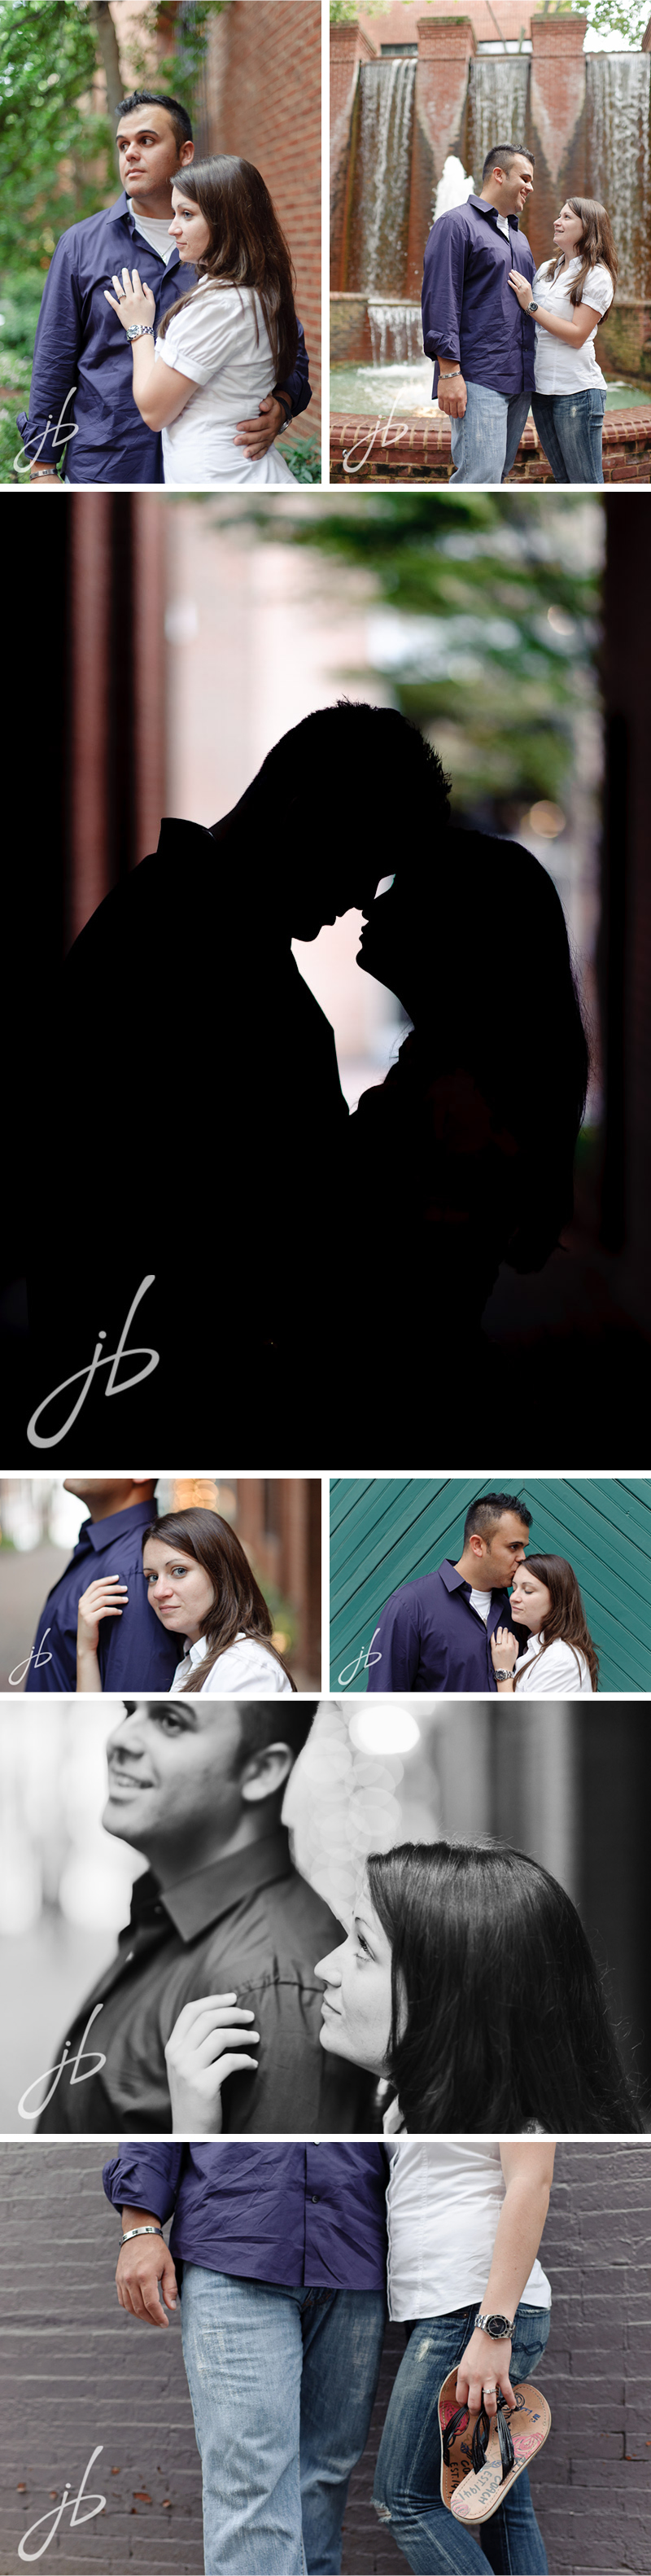 Lancaster Engagement photography by Jeremy Bischoff Photography 003